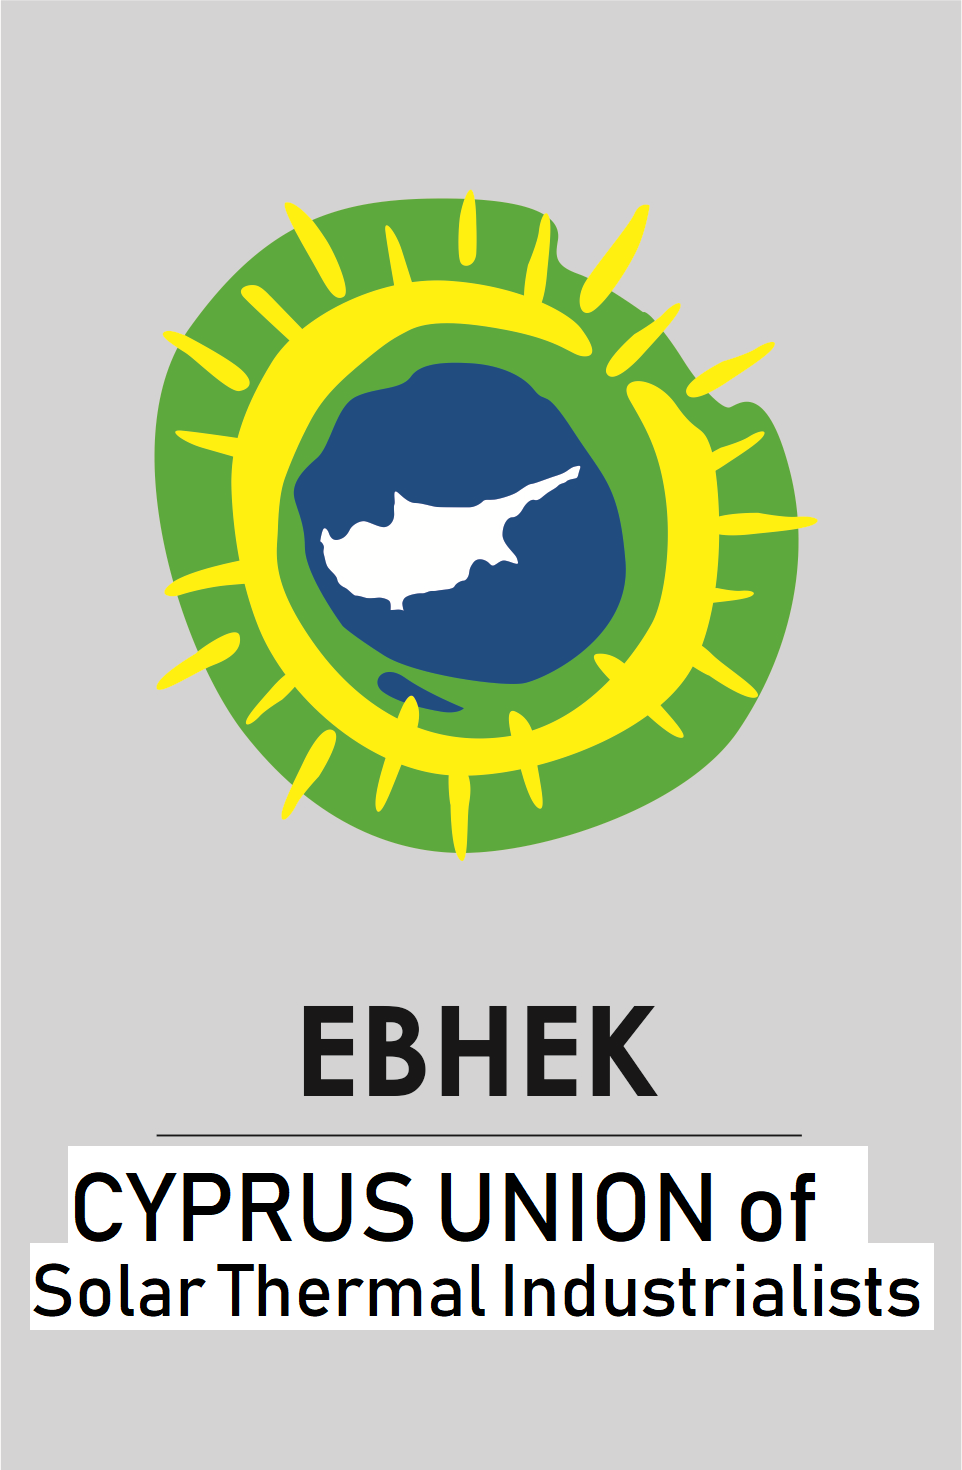 EBHEK – Union of Cyprus Solar Thermal Industrialists